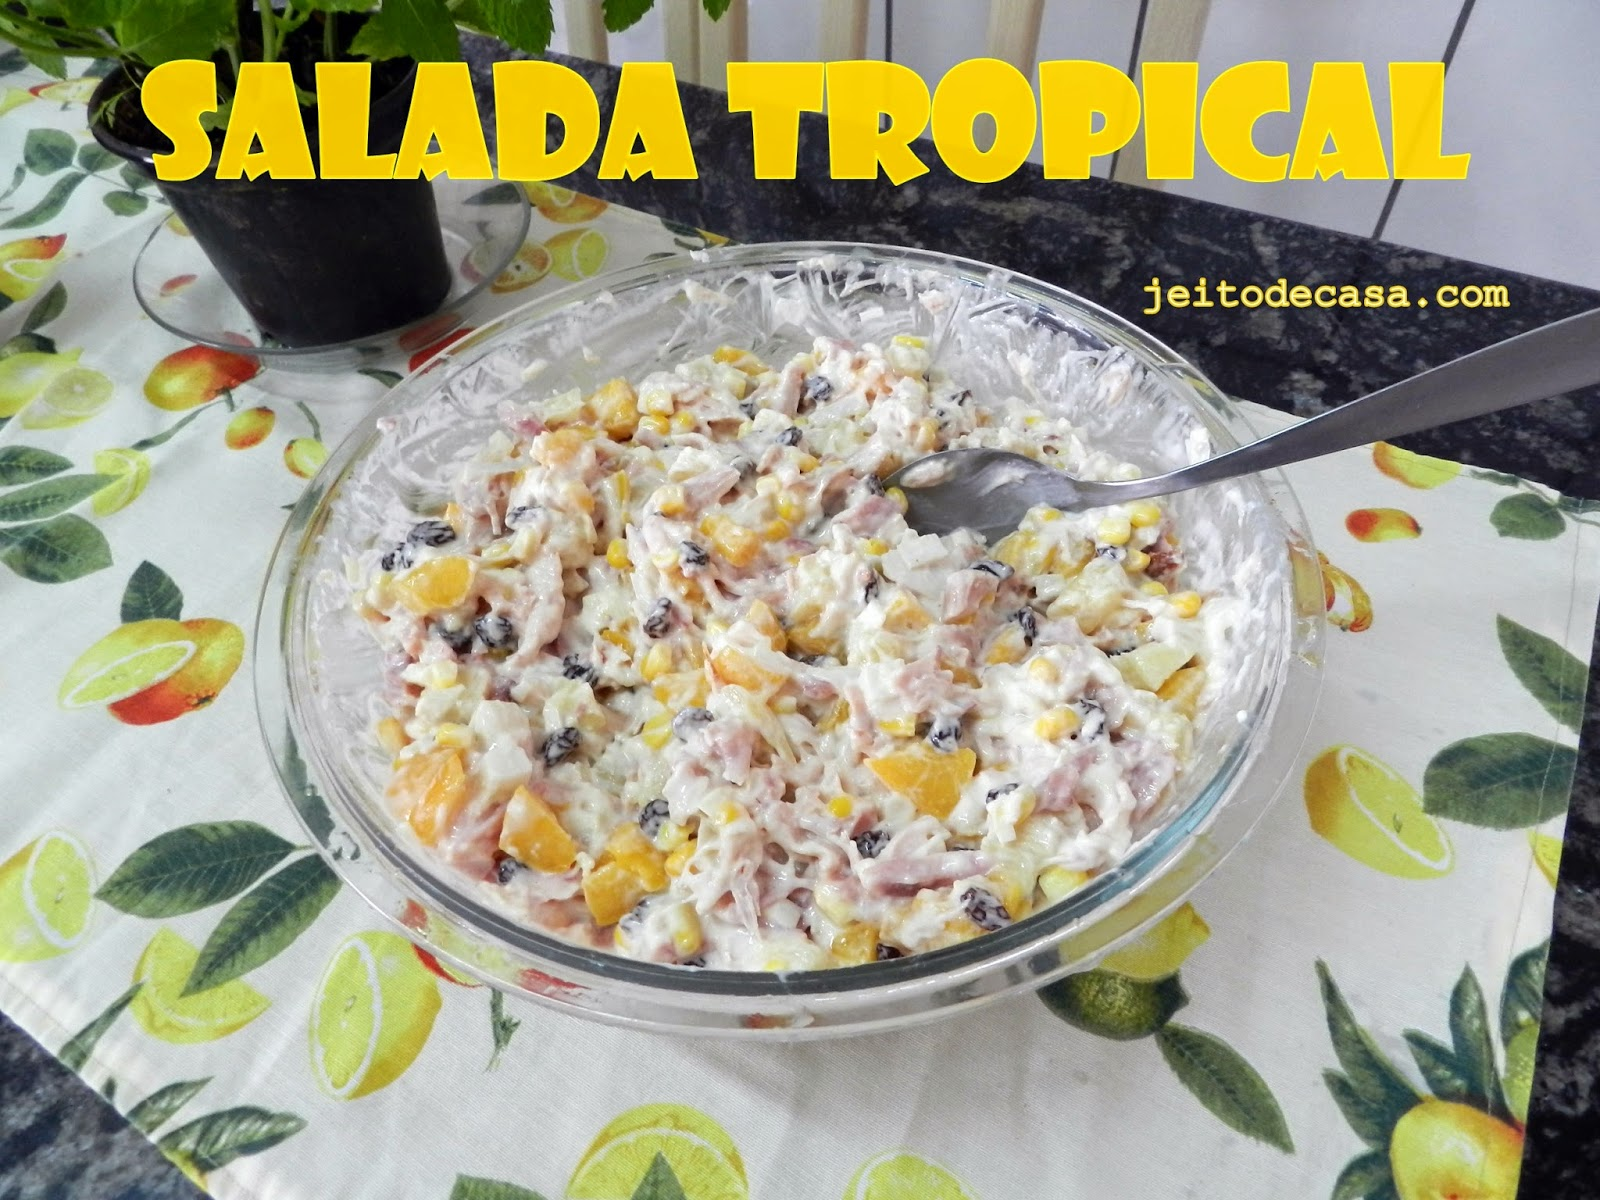 receita e ingredientes da salada tropical agridoce